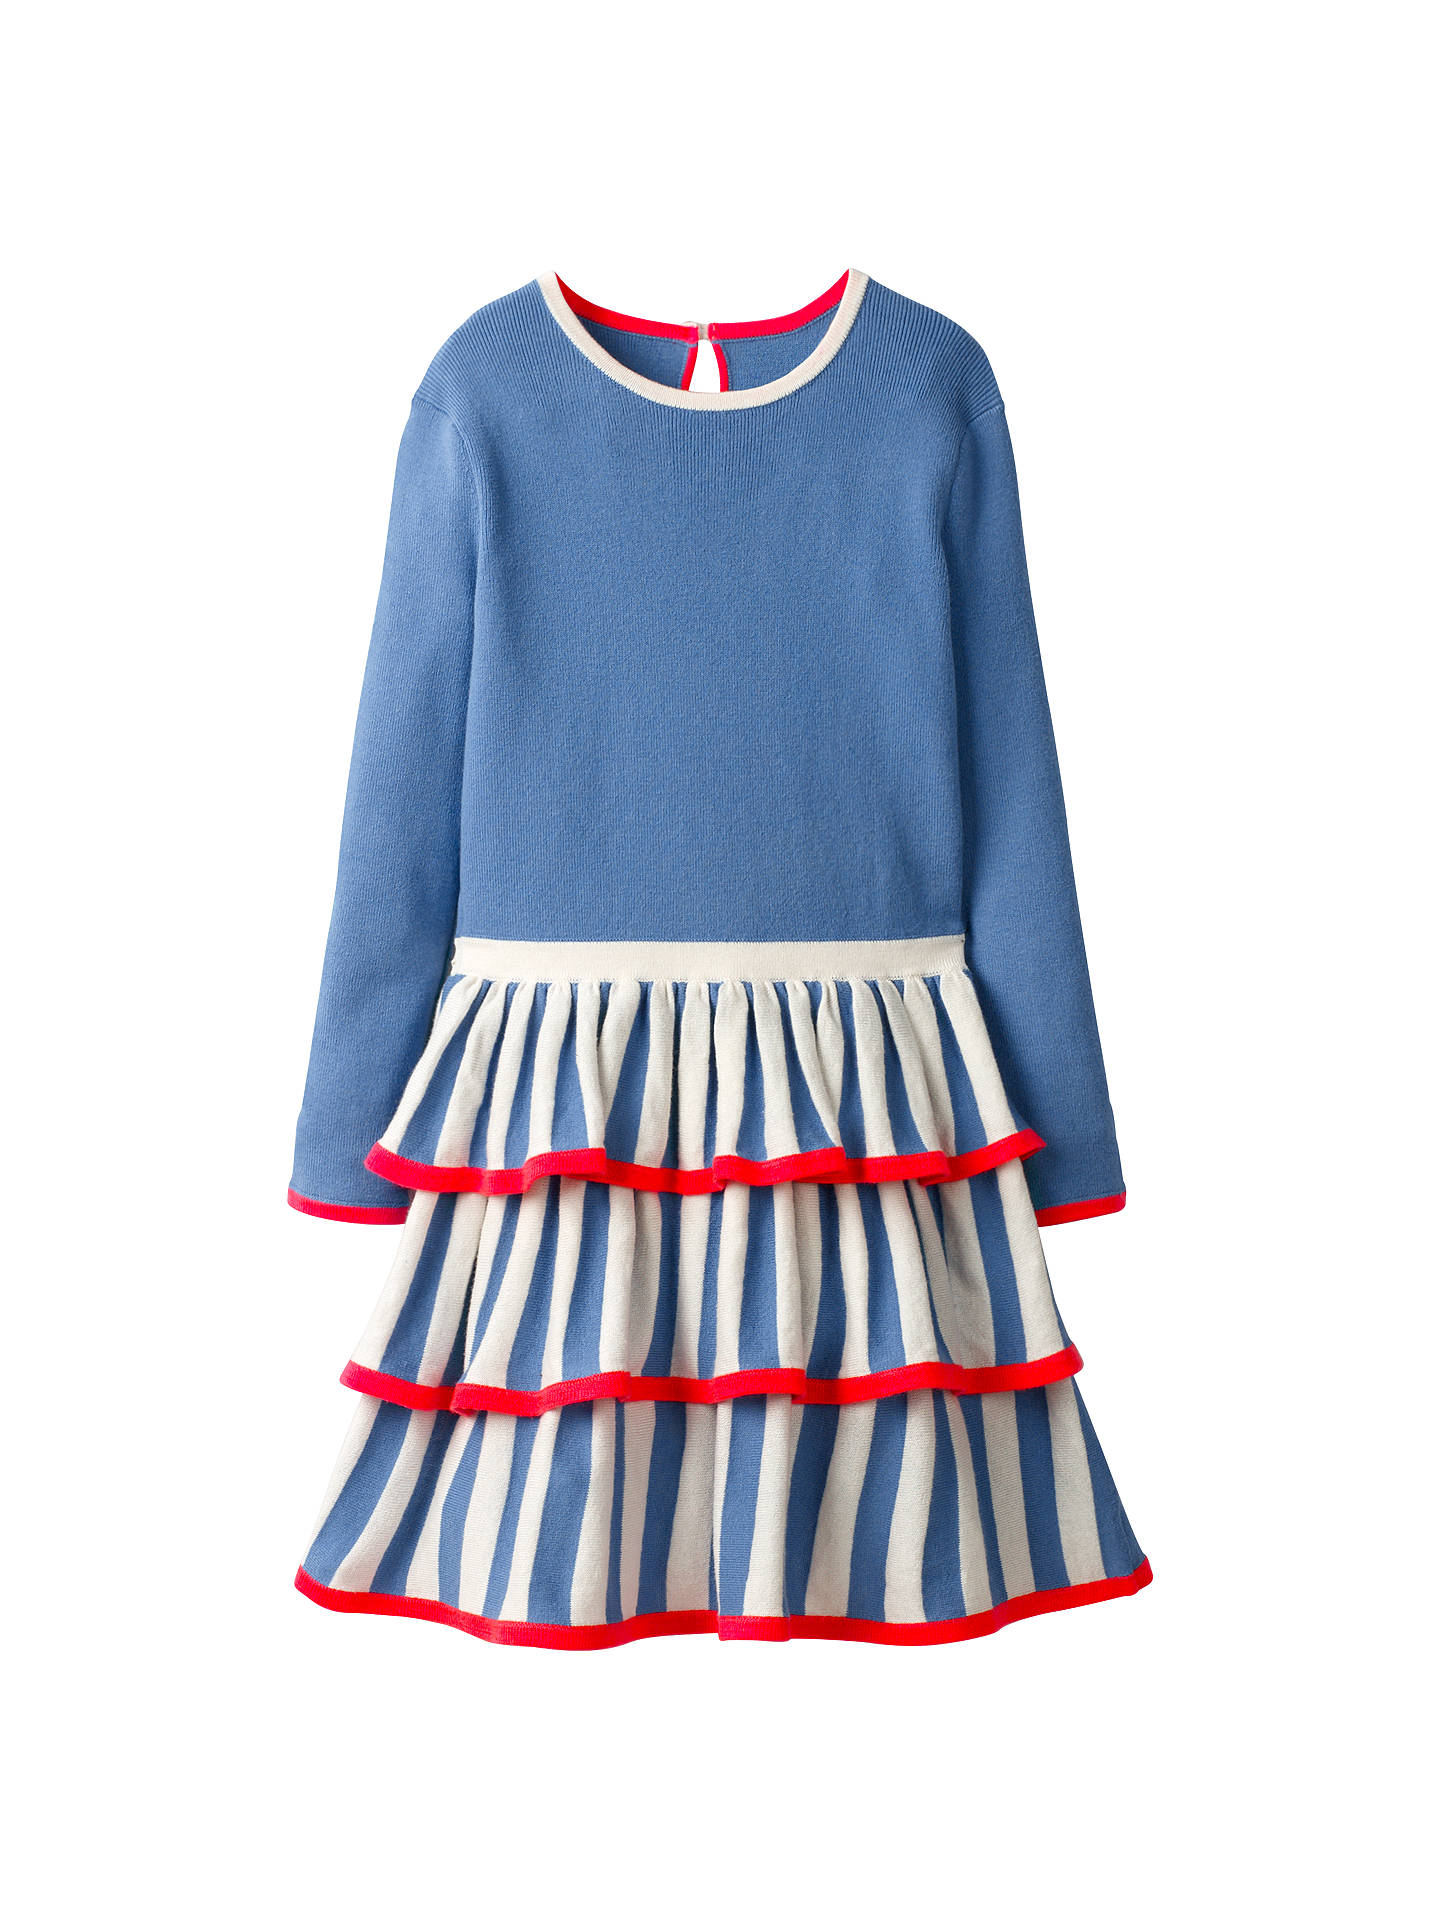 1c77db0a6a30 Buy Mini Boden Girls  Circus Stripe Knitted Dress